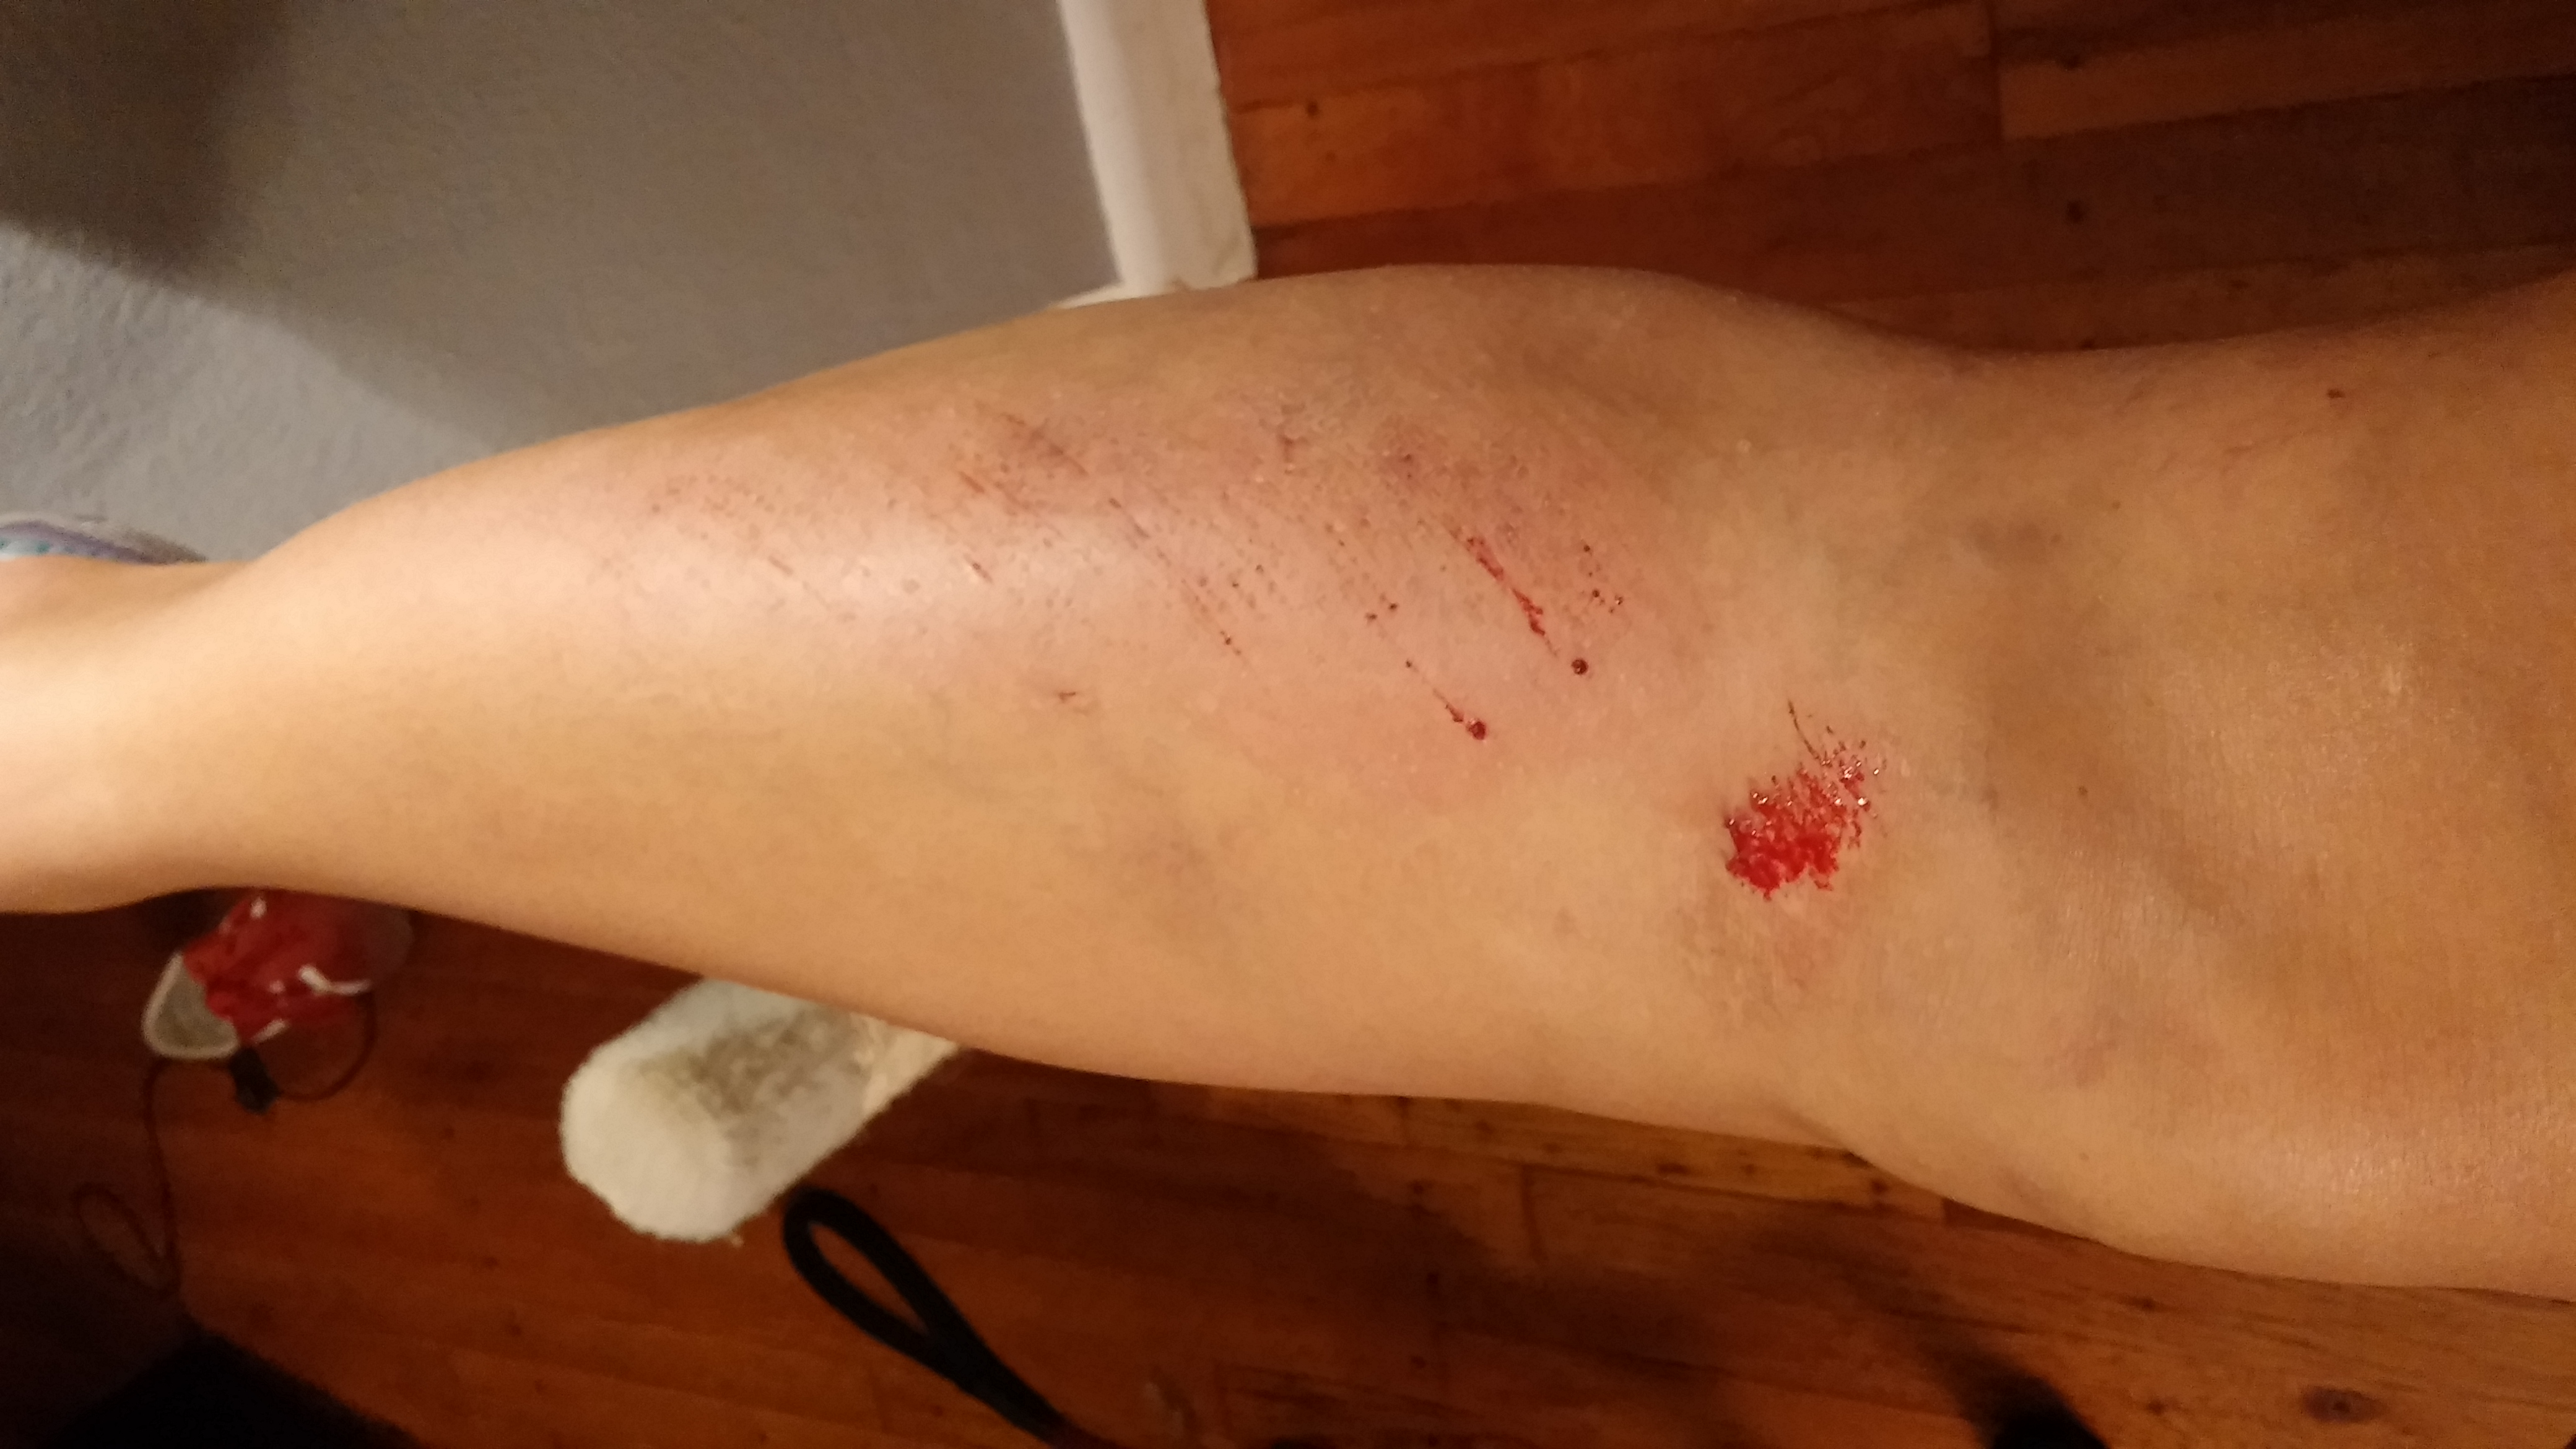 Hey, look! The new scar will be on top of the old scar! Sweet! Also, I had to delete the first photo I took because the dog was trying to lick the blood off my leg.